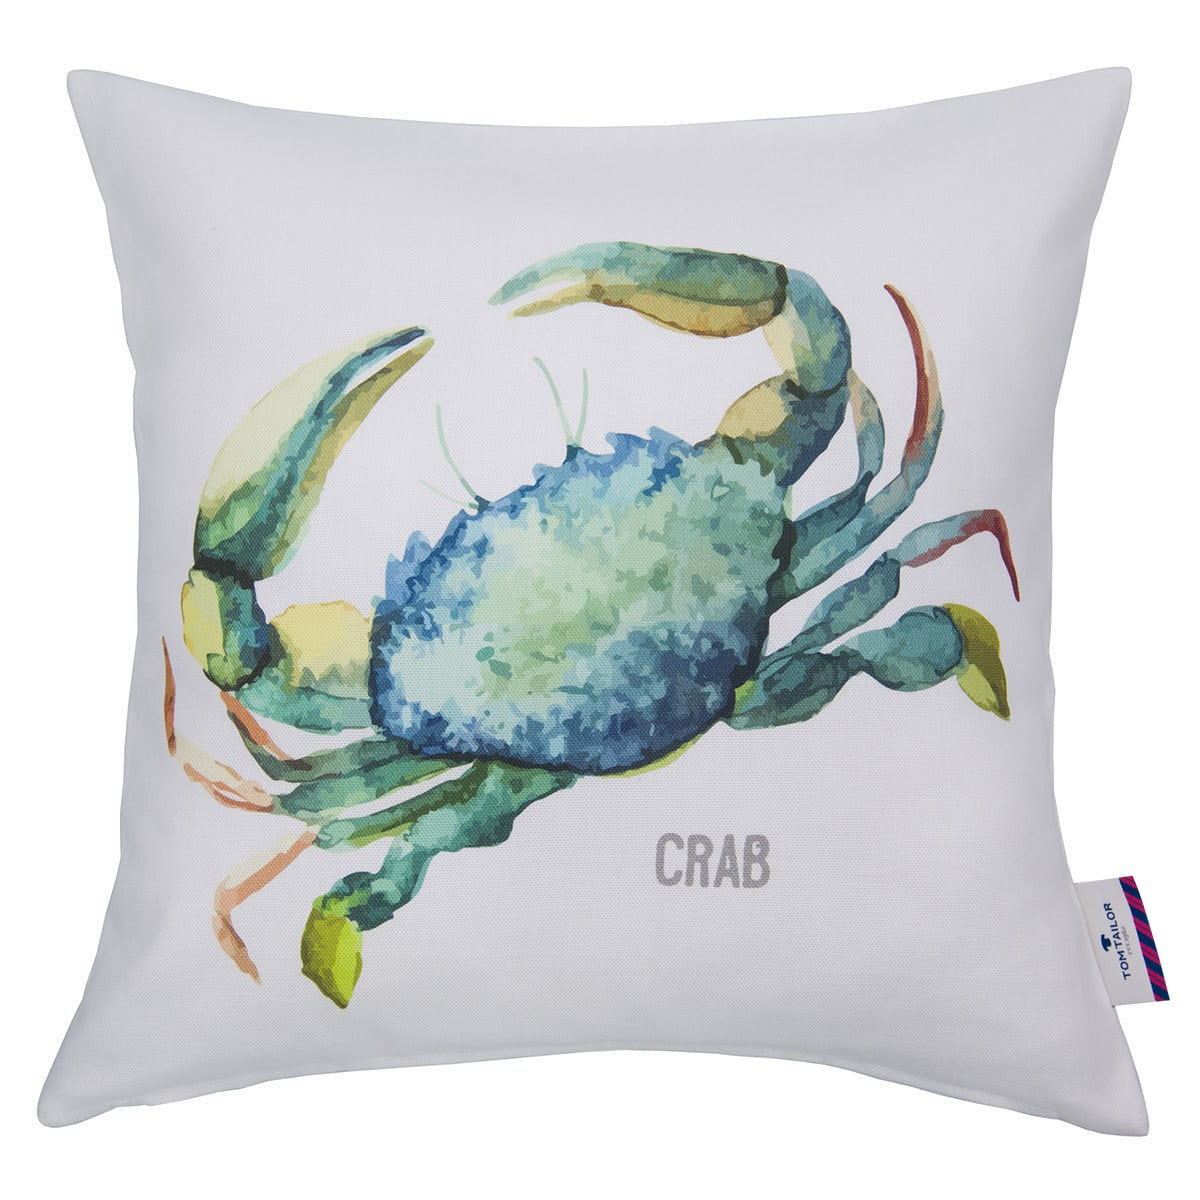 tom tailor kissenh lle green crab wei t rkis g nstig online kaufen bei bettwaren shop. Black Bedroom Furniture Sets. Home Design Ideas